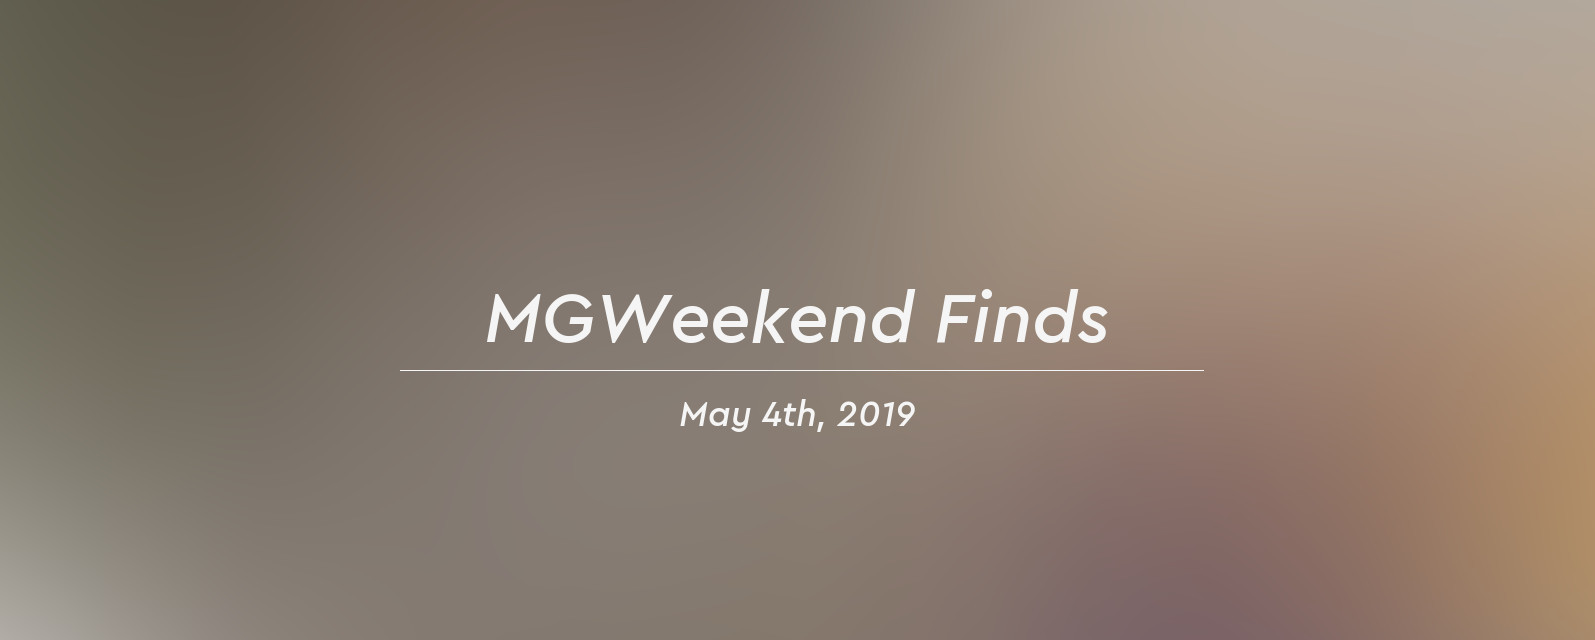 mgw finds 2019 05 04 header